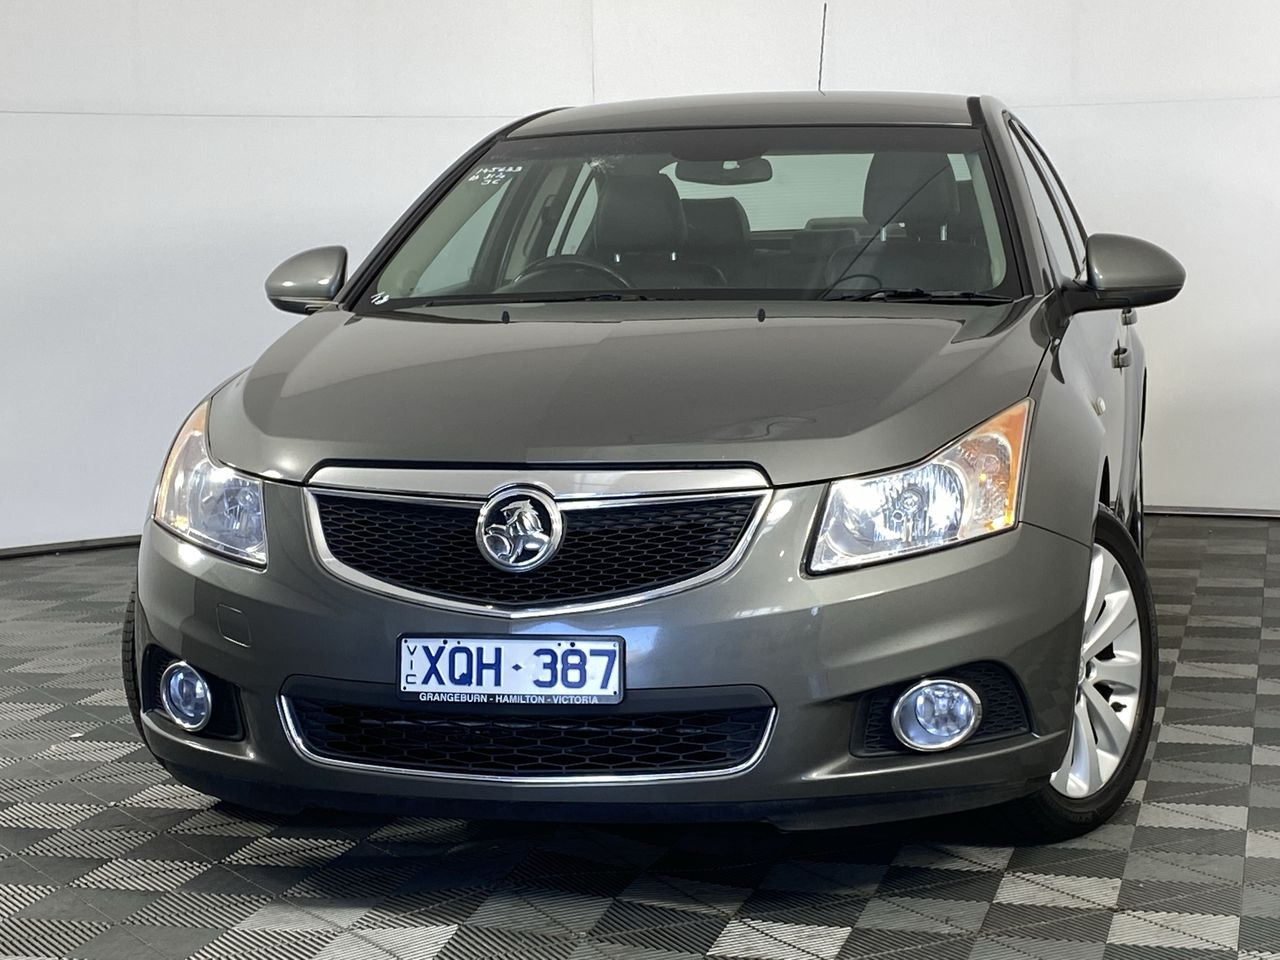 2011 Holden Cruze CDX JH Manual Sedan